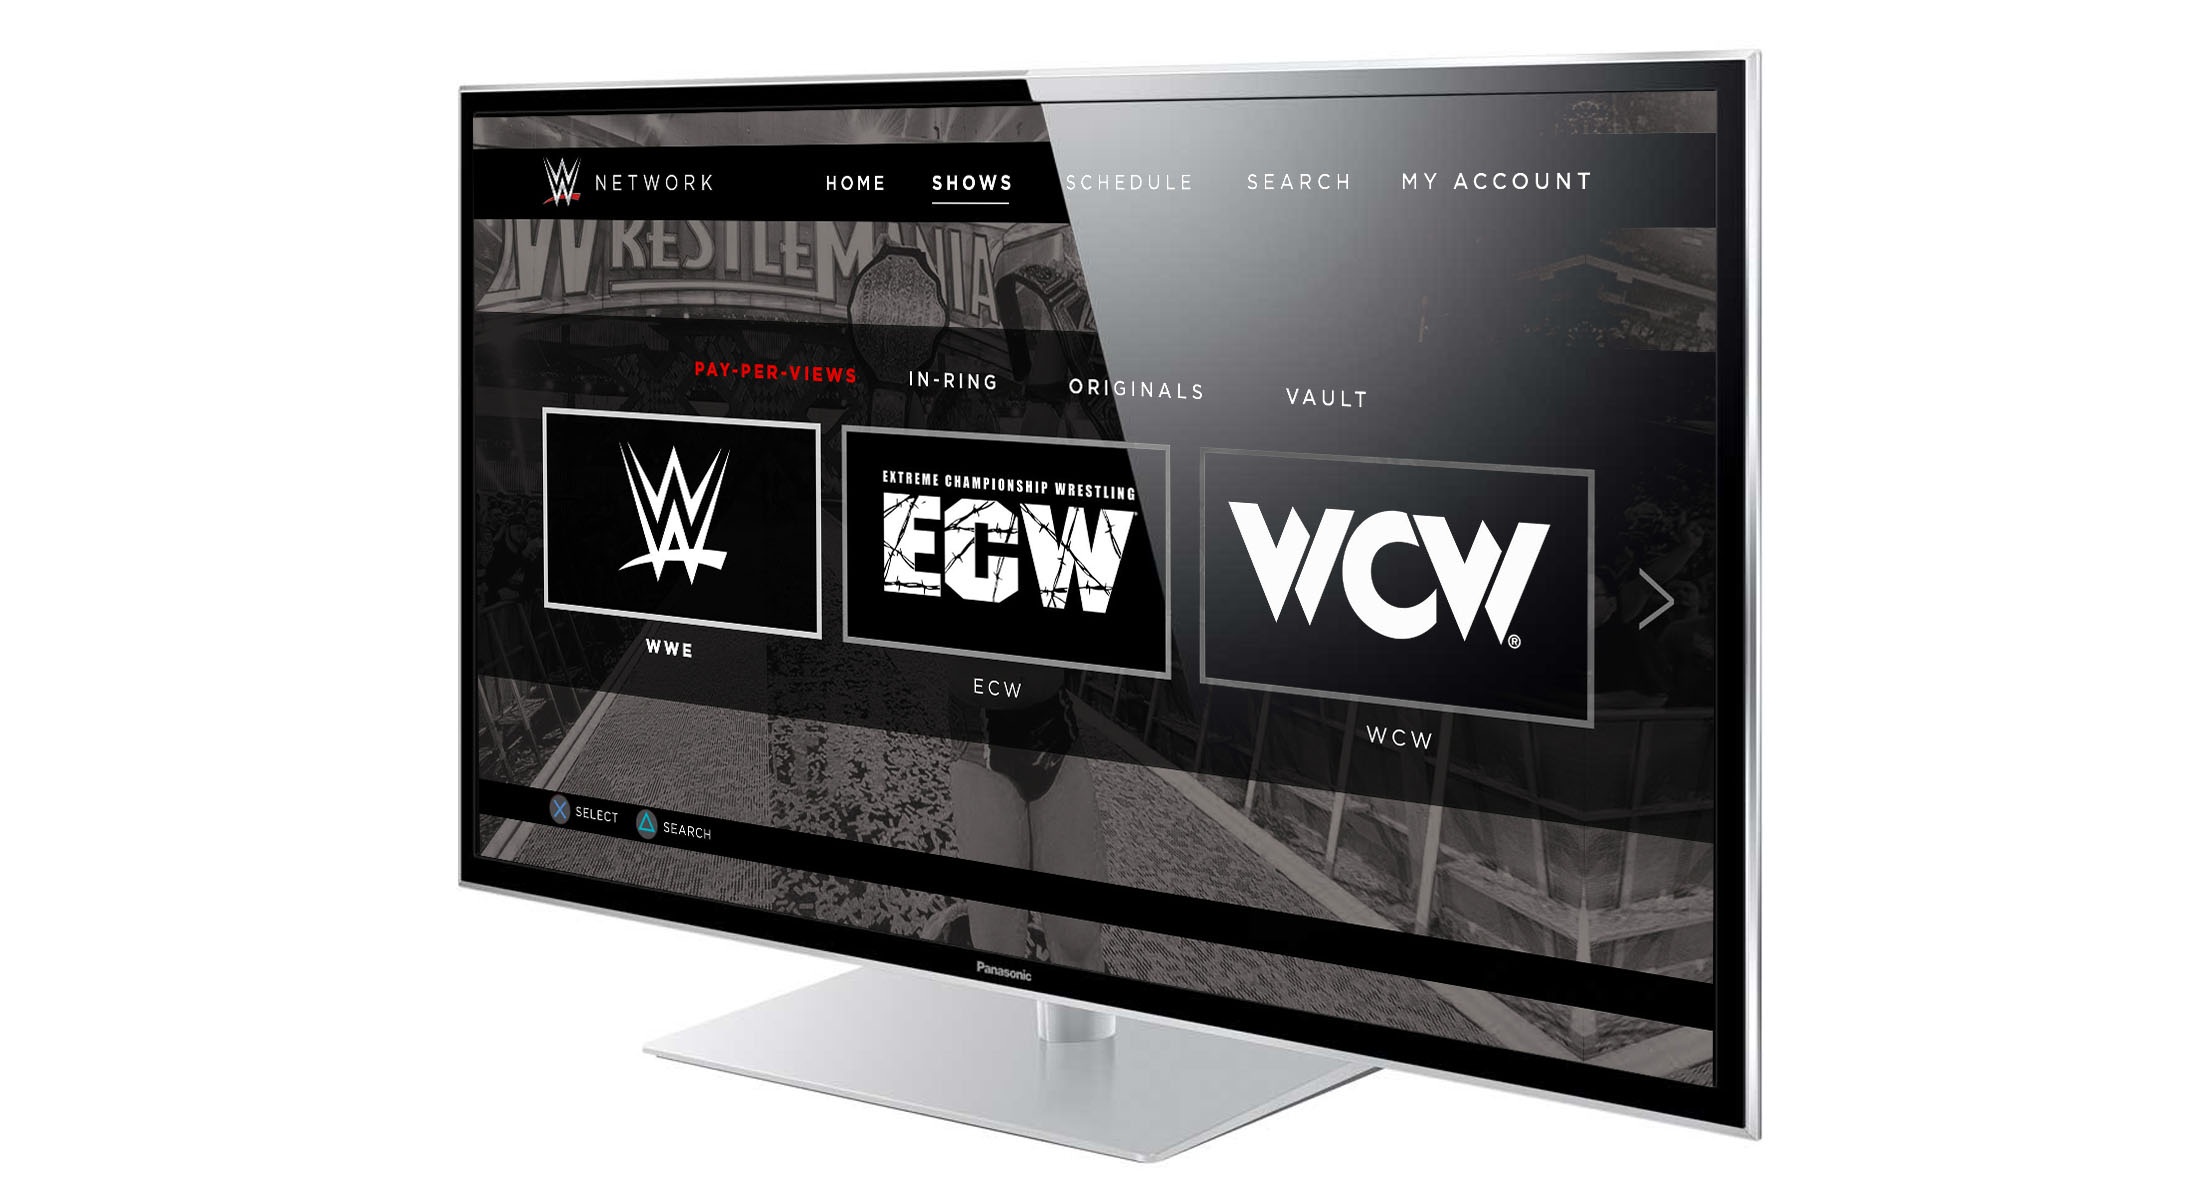 WWE_Network_ReDesign_Comp_0000_02_SHOWS_2.jpg